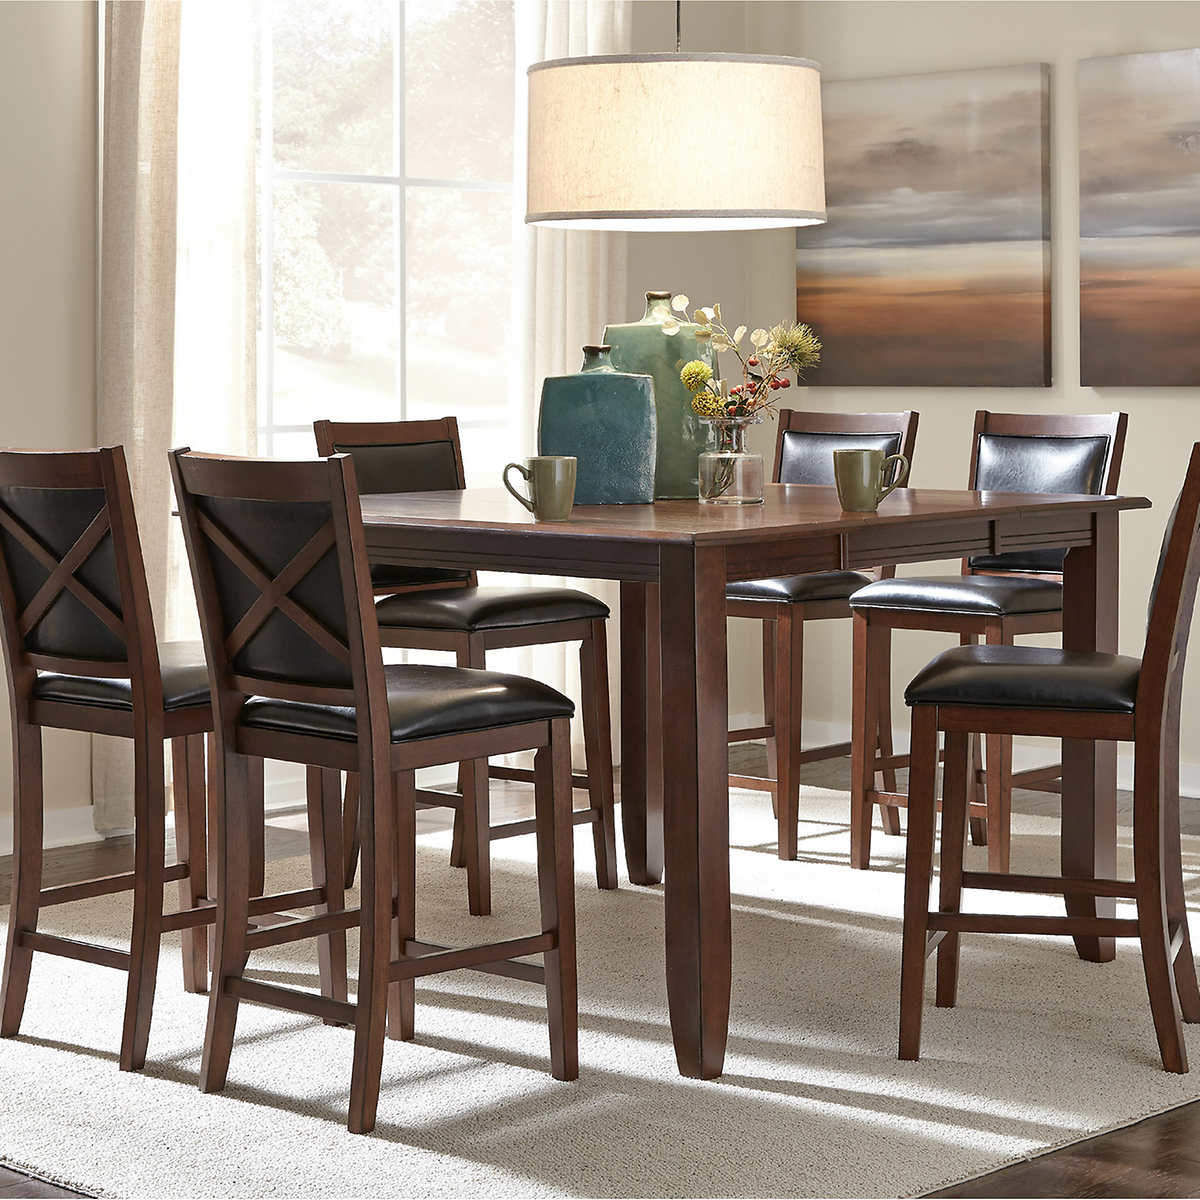 torence piece counter height dining set.